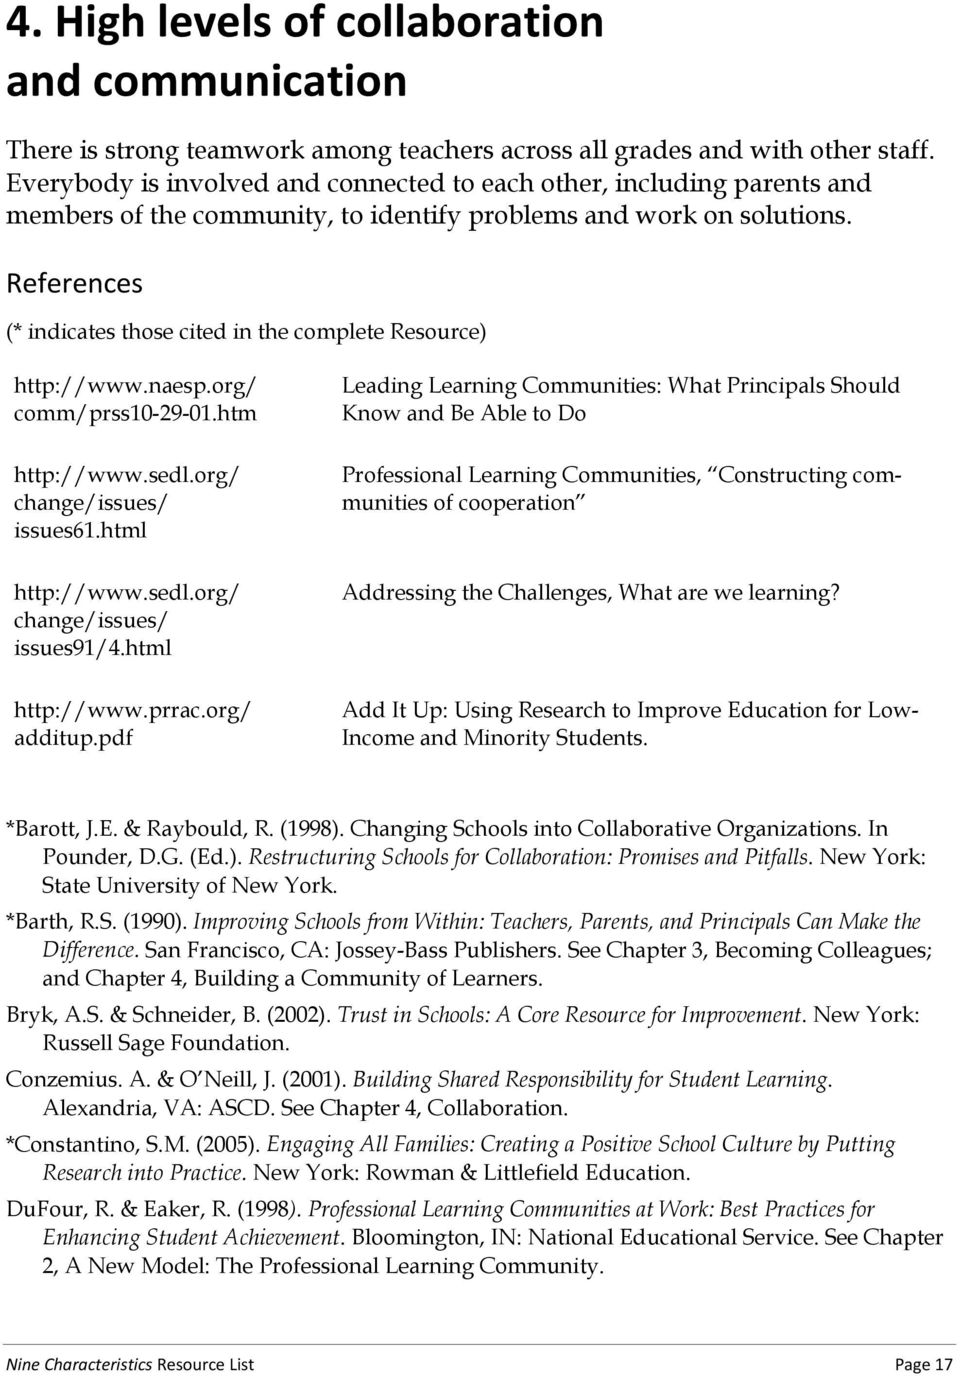 References (* indicates those cited in the complete Resource) http://www.naesp.org/ comm/prss10-29-01.htm http://www.sedl.org/ change/issues/ issues61.html http://www.sedl.org/ change/issues/ issues91/4.